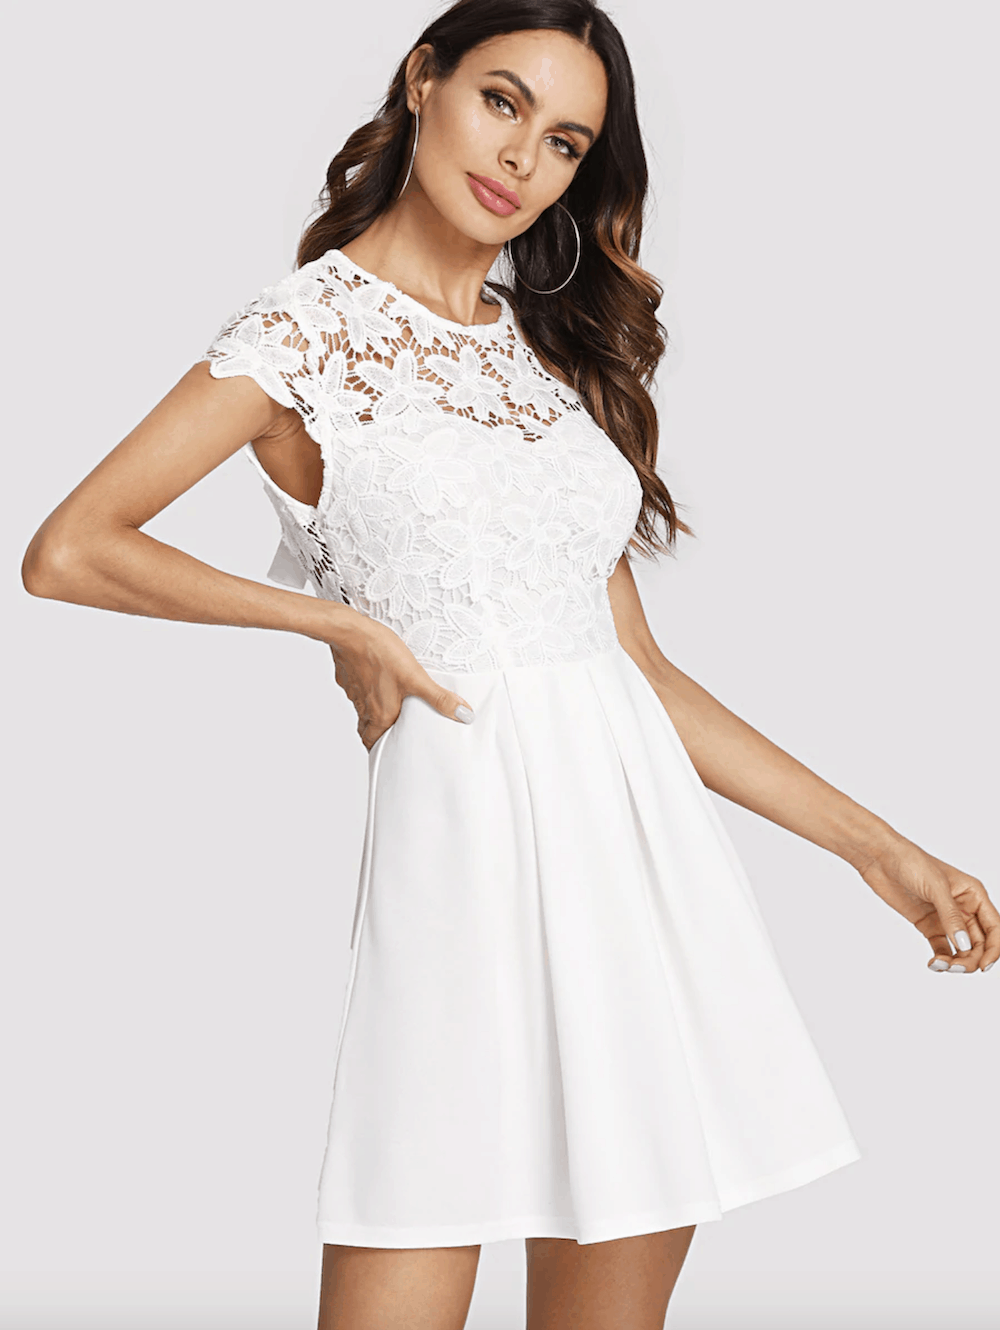 605cd206be4 White Lace Wedding Shower Dress - Gomes Weine AG